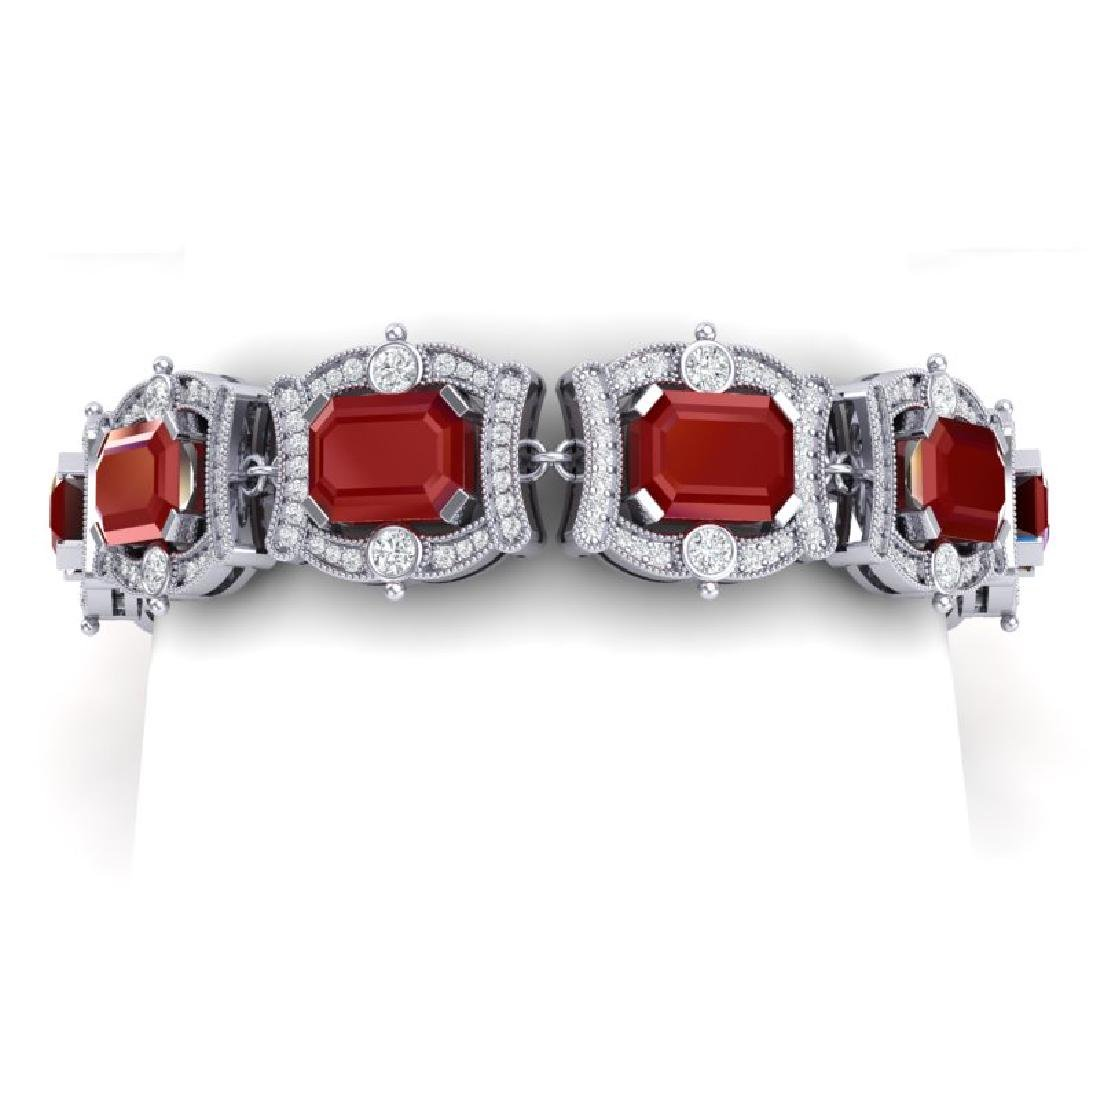 43.87 CTW Royalty Ruby & VS Diamond Bracelet 18K White